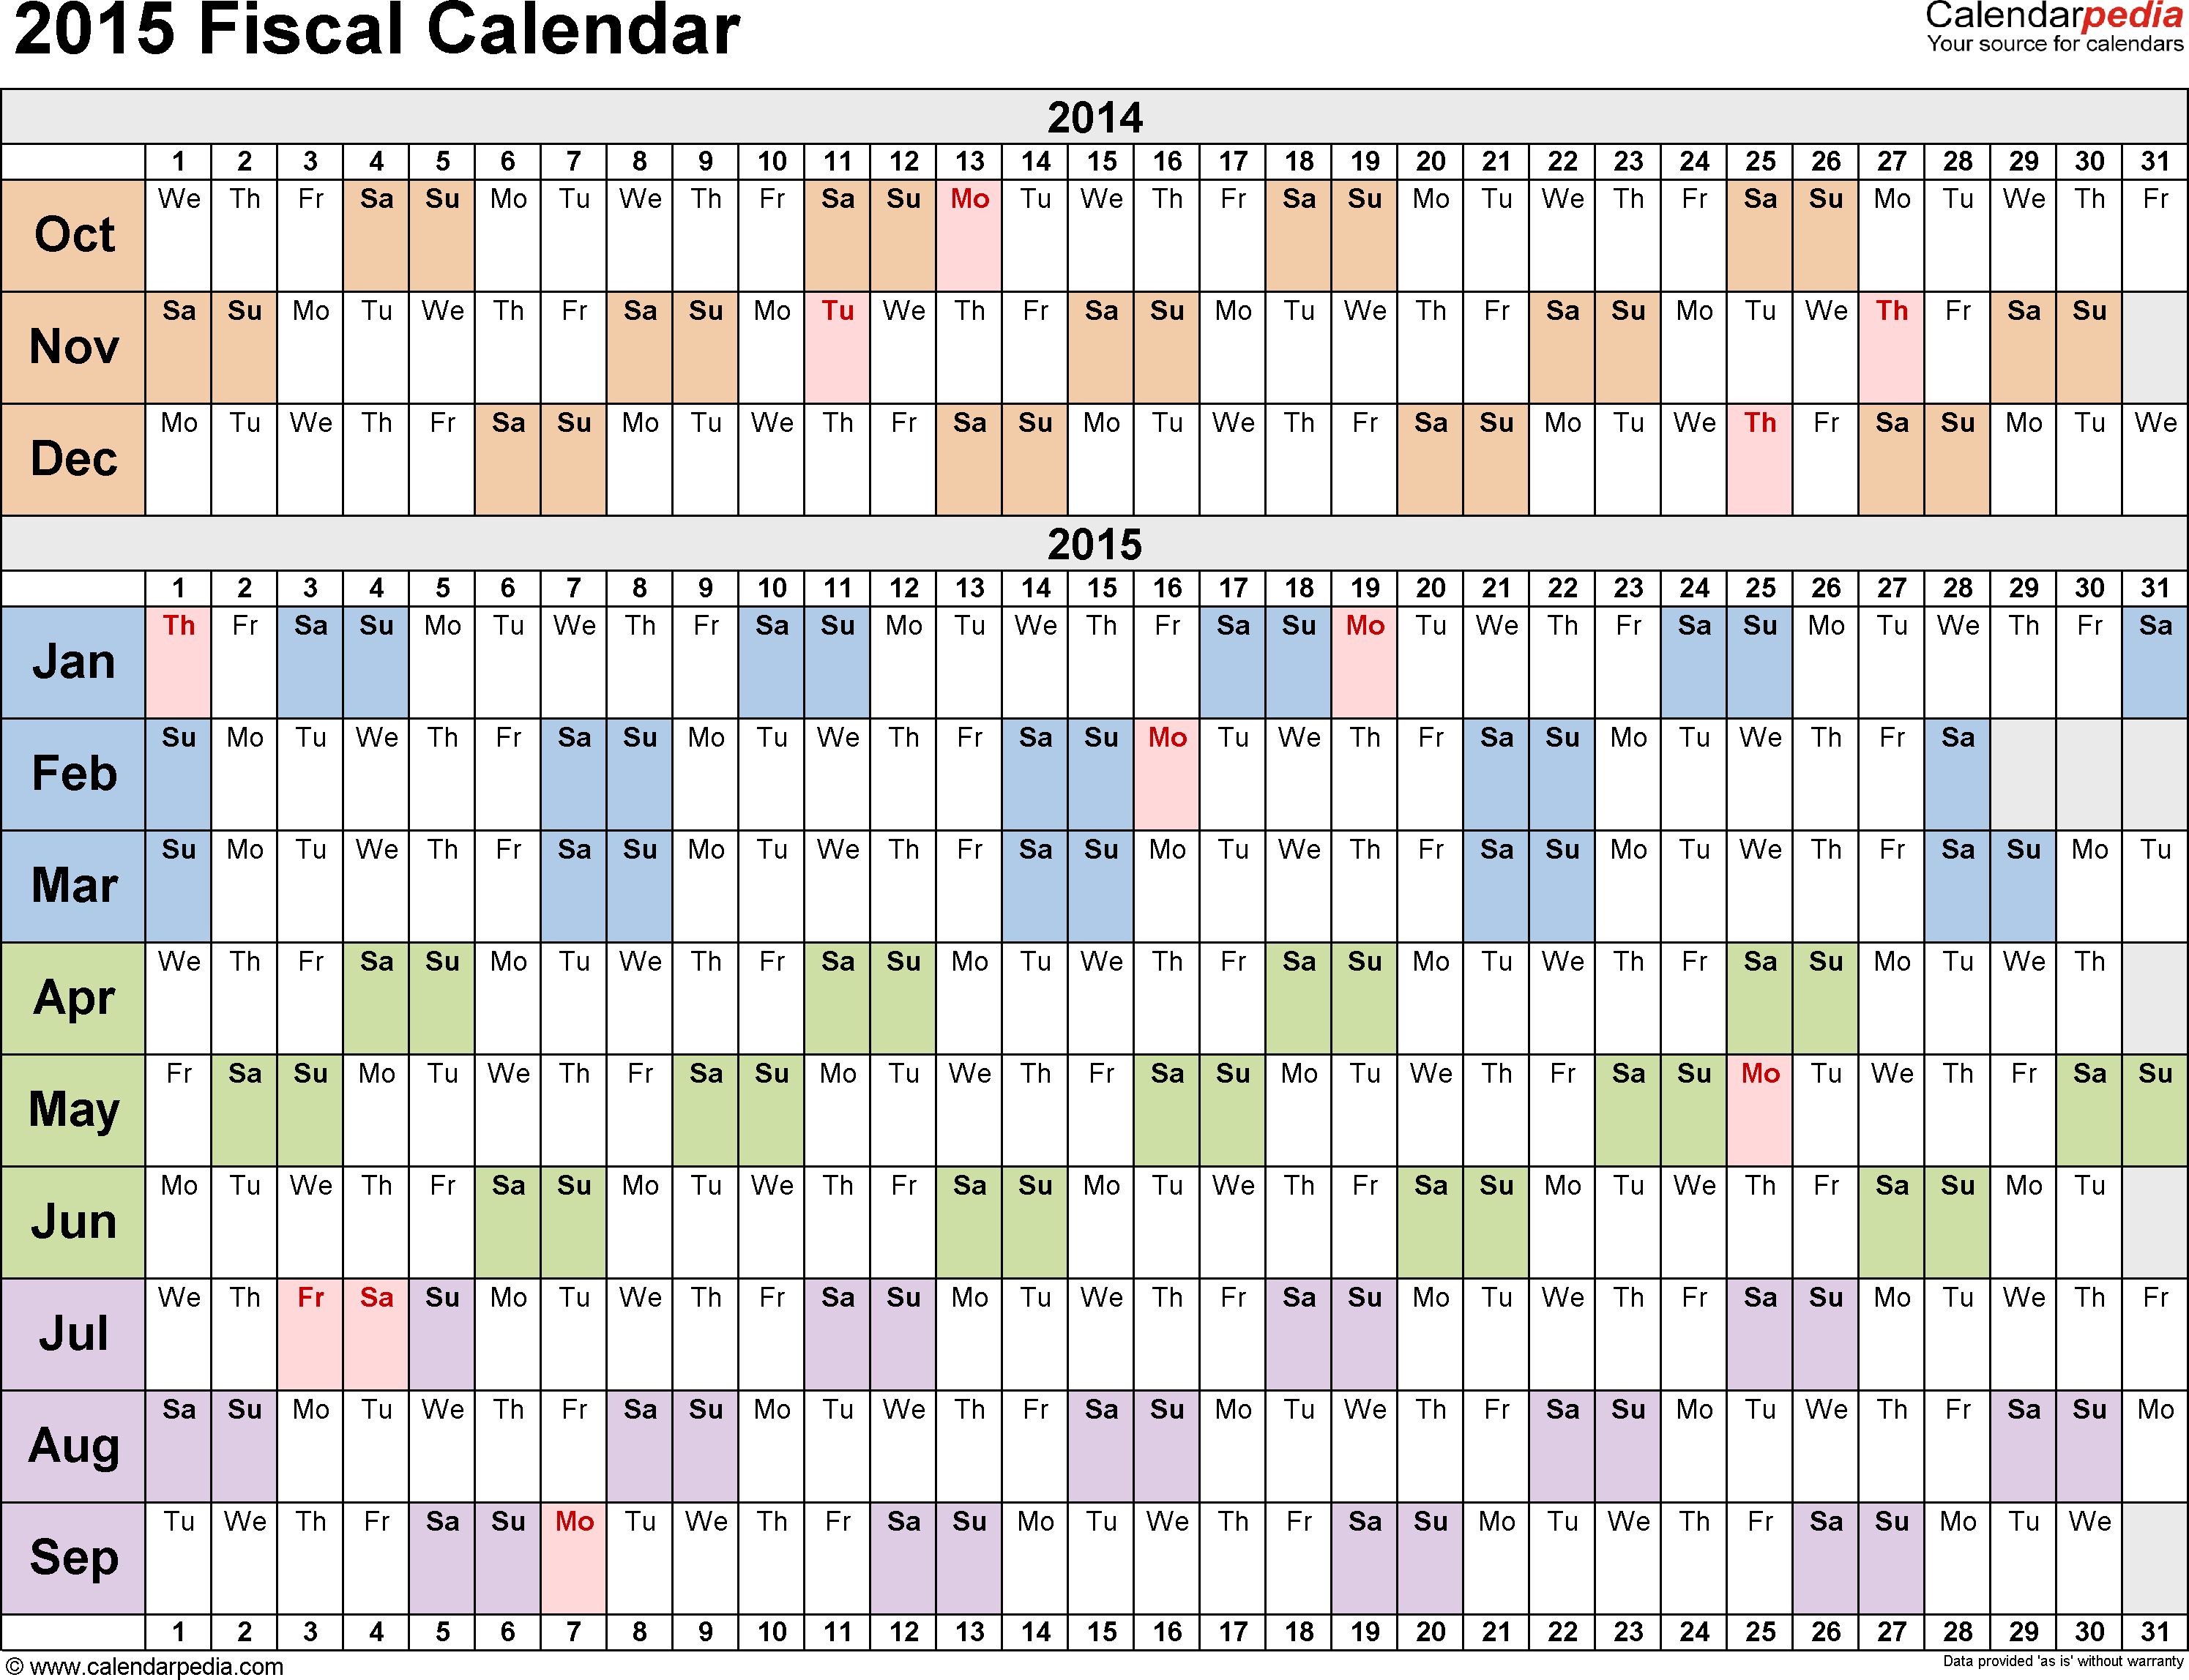 Template 2: Fiscal year calendar 2015 for Excel, landscape orientation, days horizontally (linear), 1 page